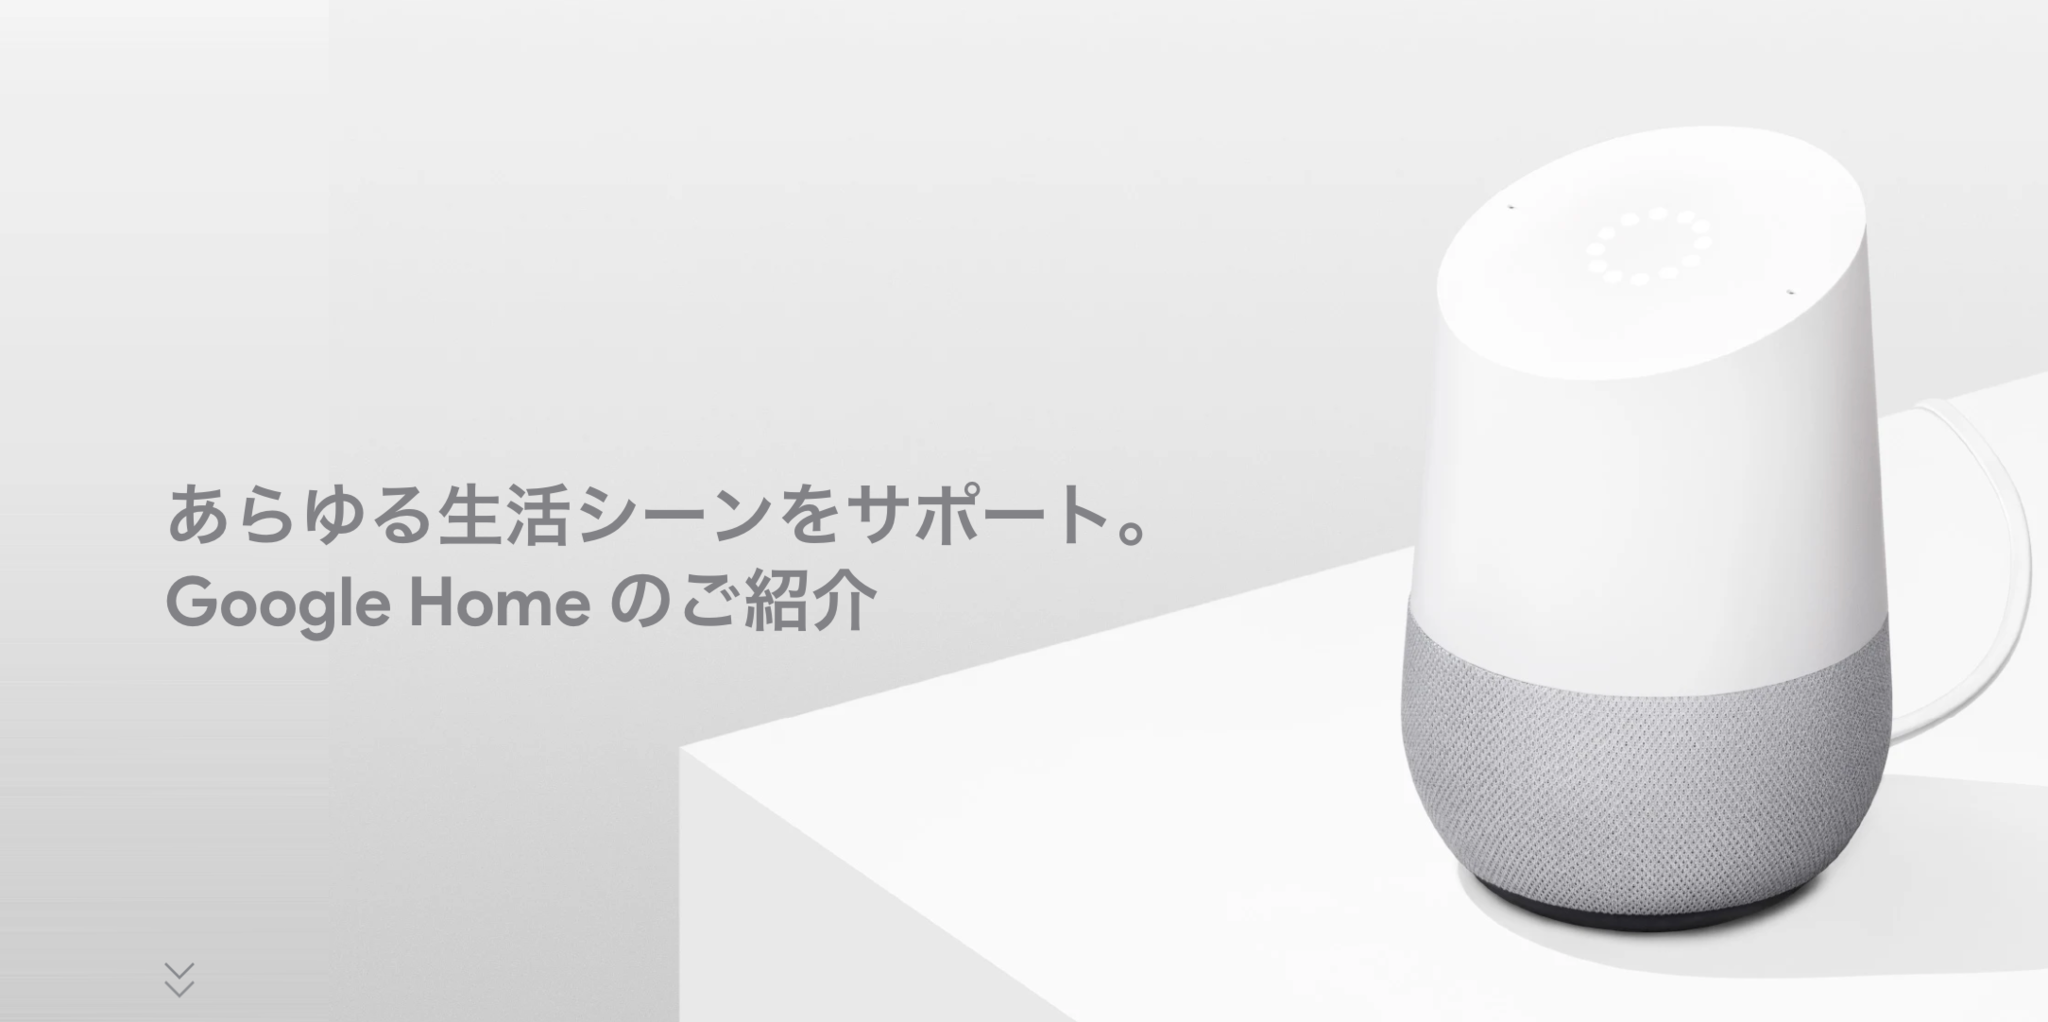 google-home-20190128.png